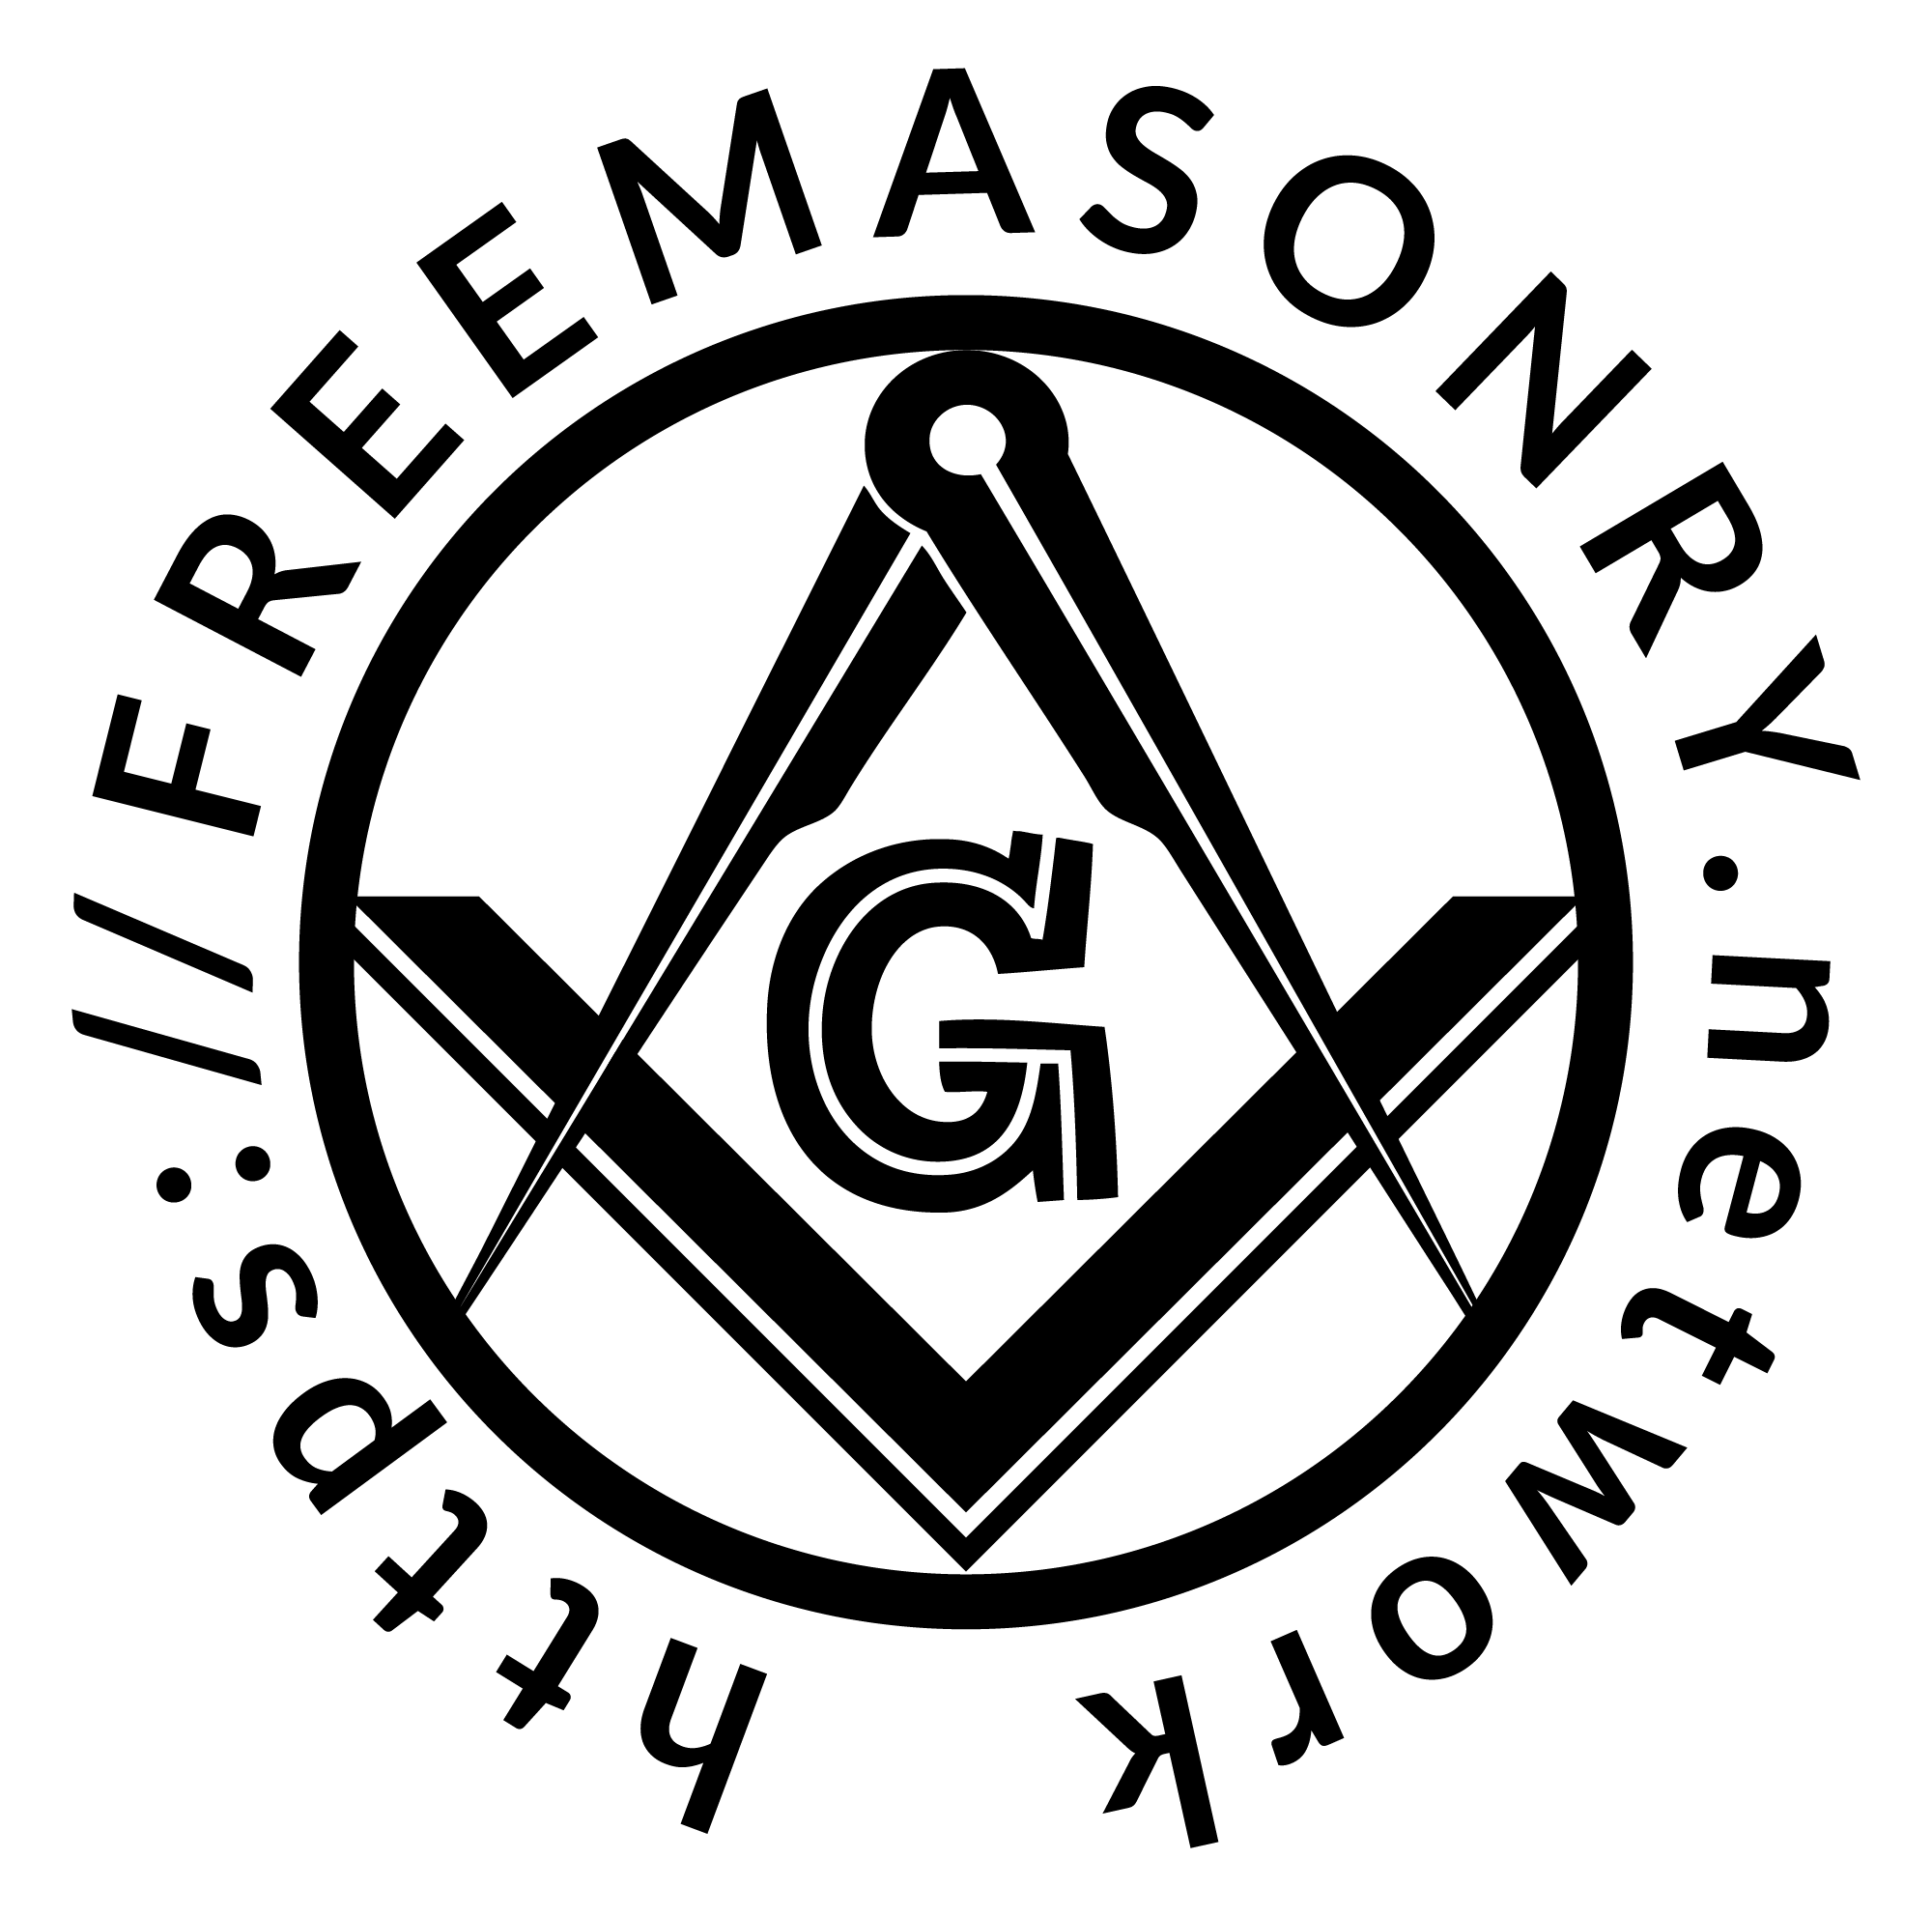 MASONIC SELF-DEVELOPMENT